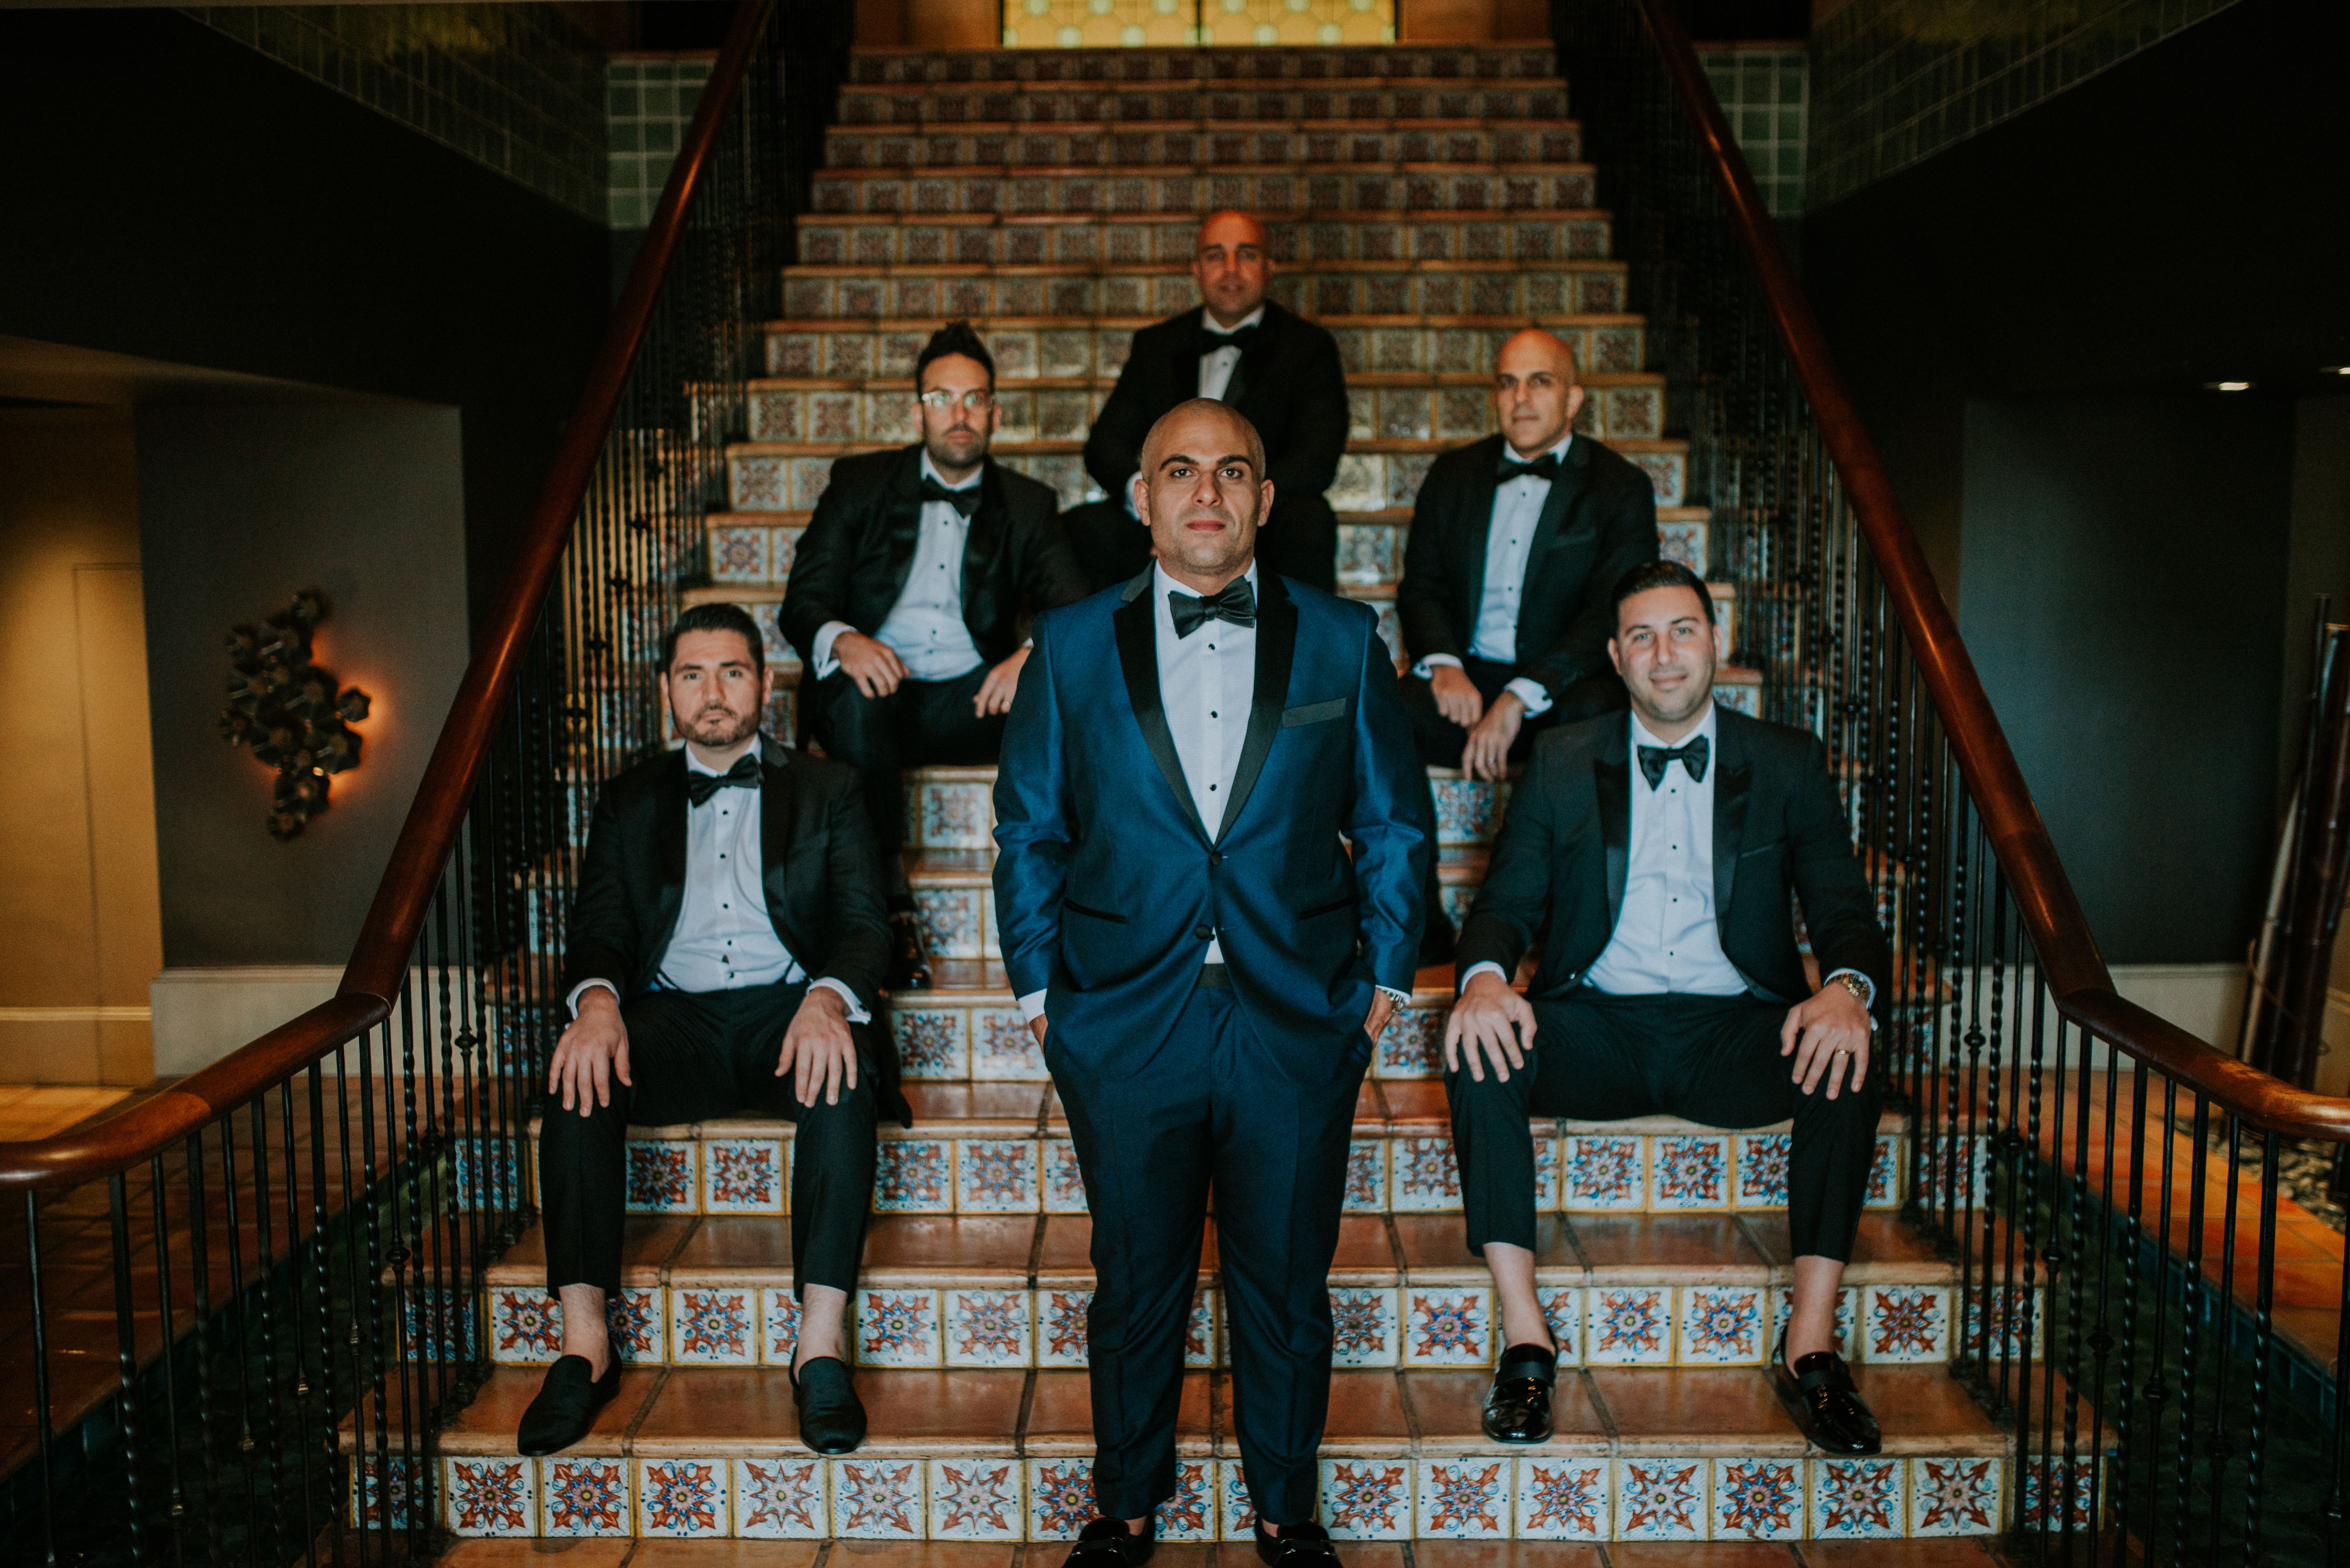 groom and groomsmen bridal party in blue tuxedo wedding day wedding photography the hollywood roosev